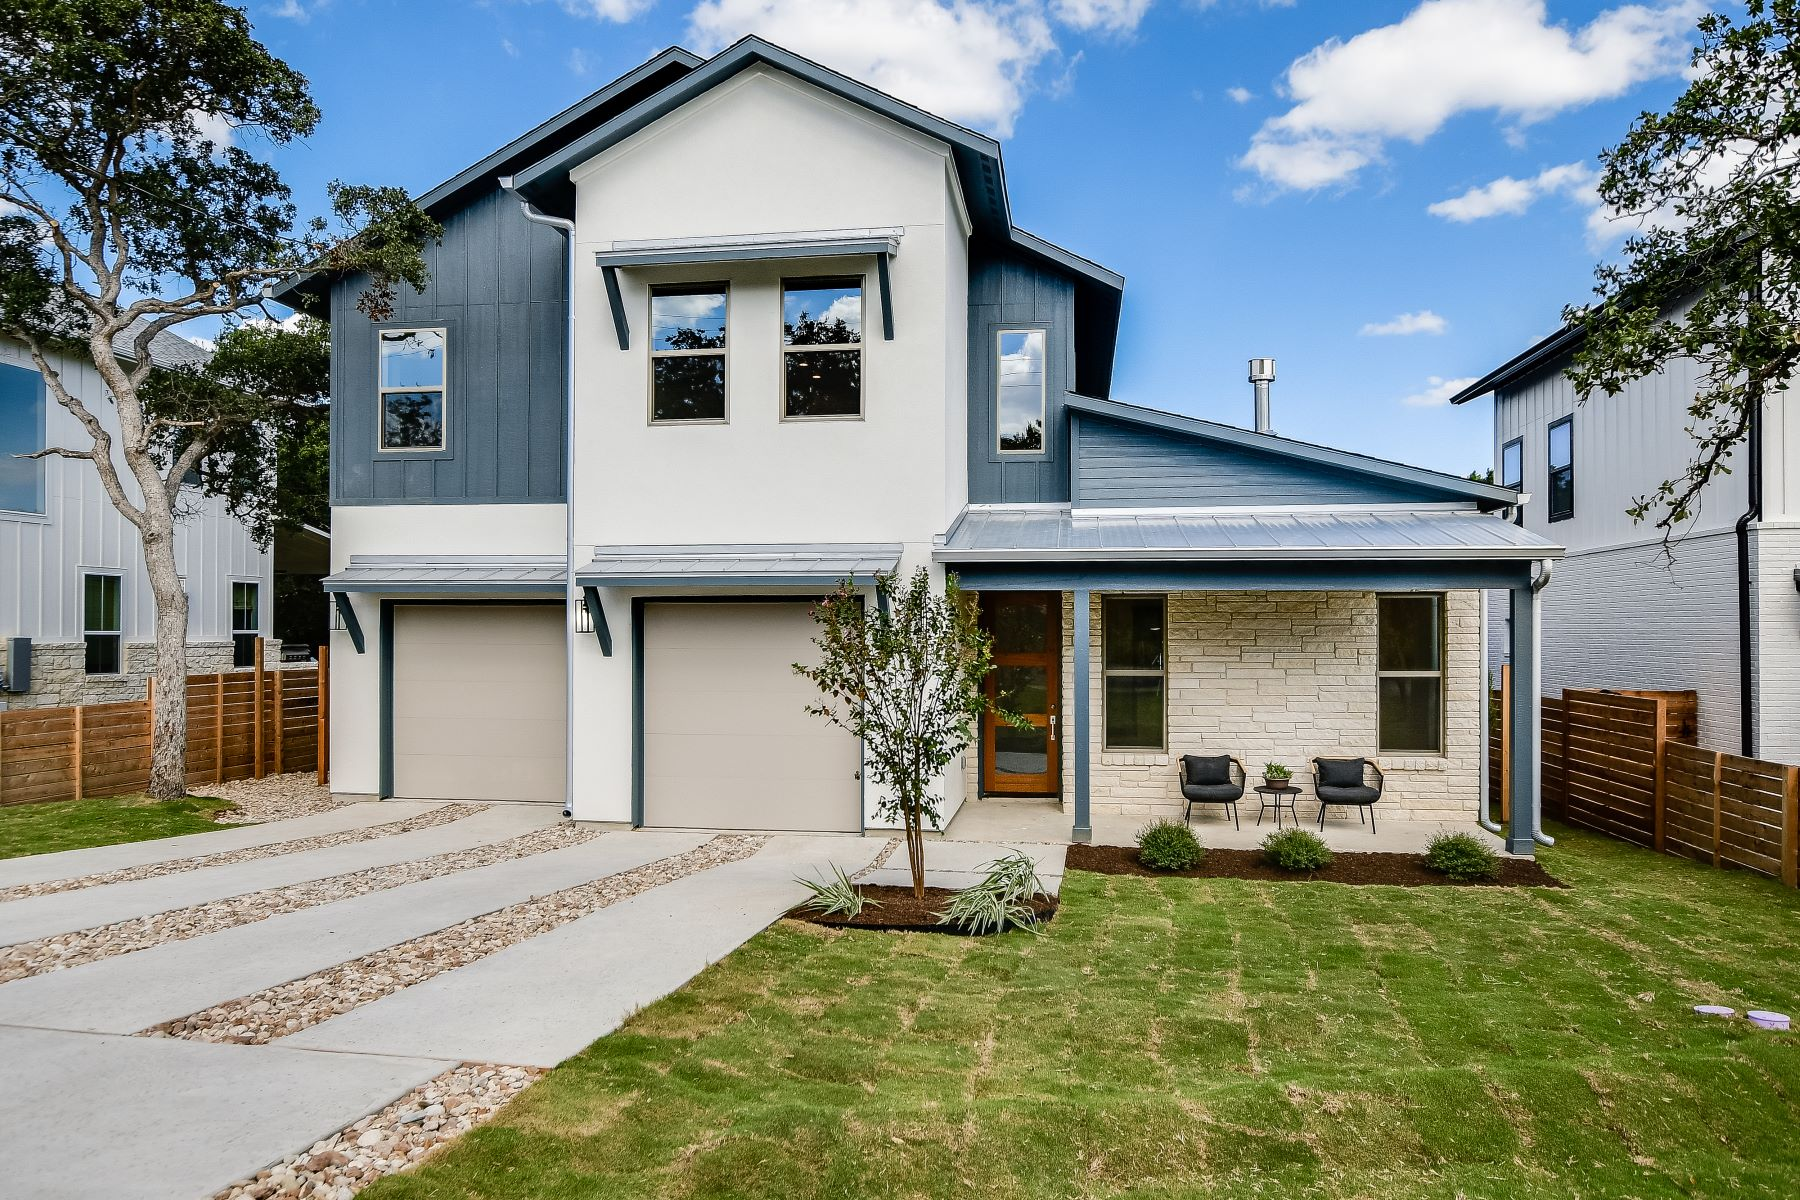 Single Family Homes for Sale at Hill Country Modern 11003 7th Street Jonestown, Texas 78645 United States